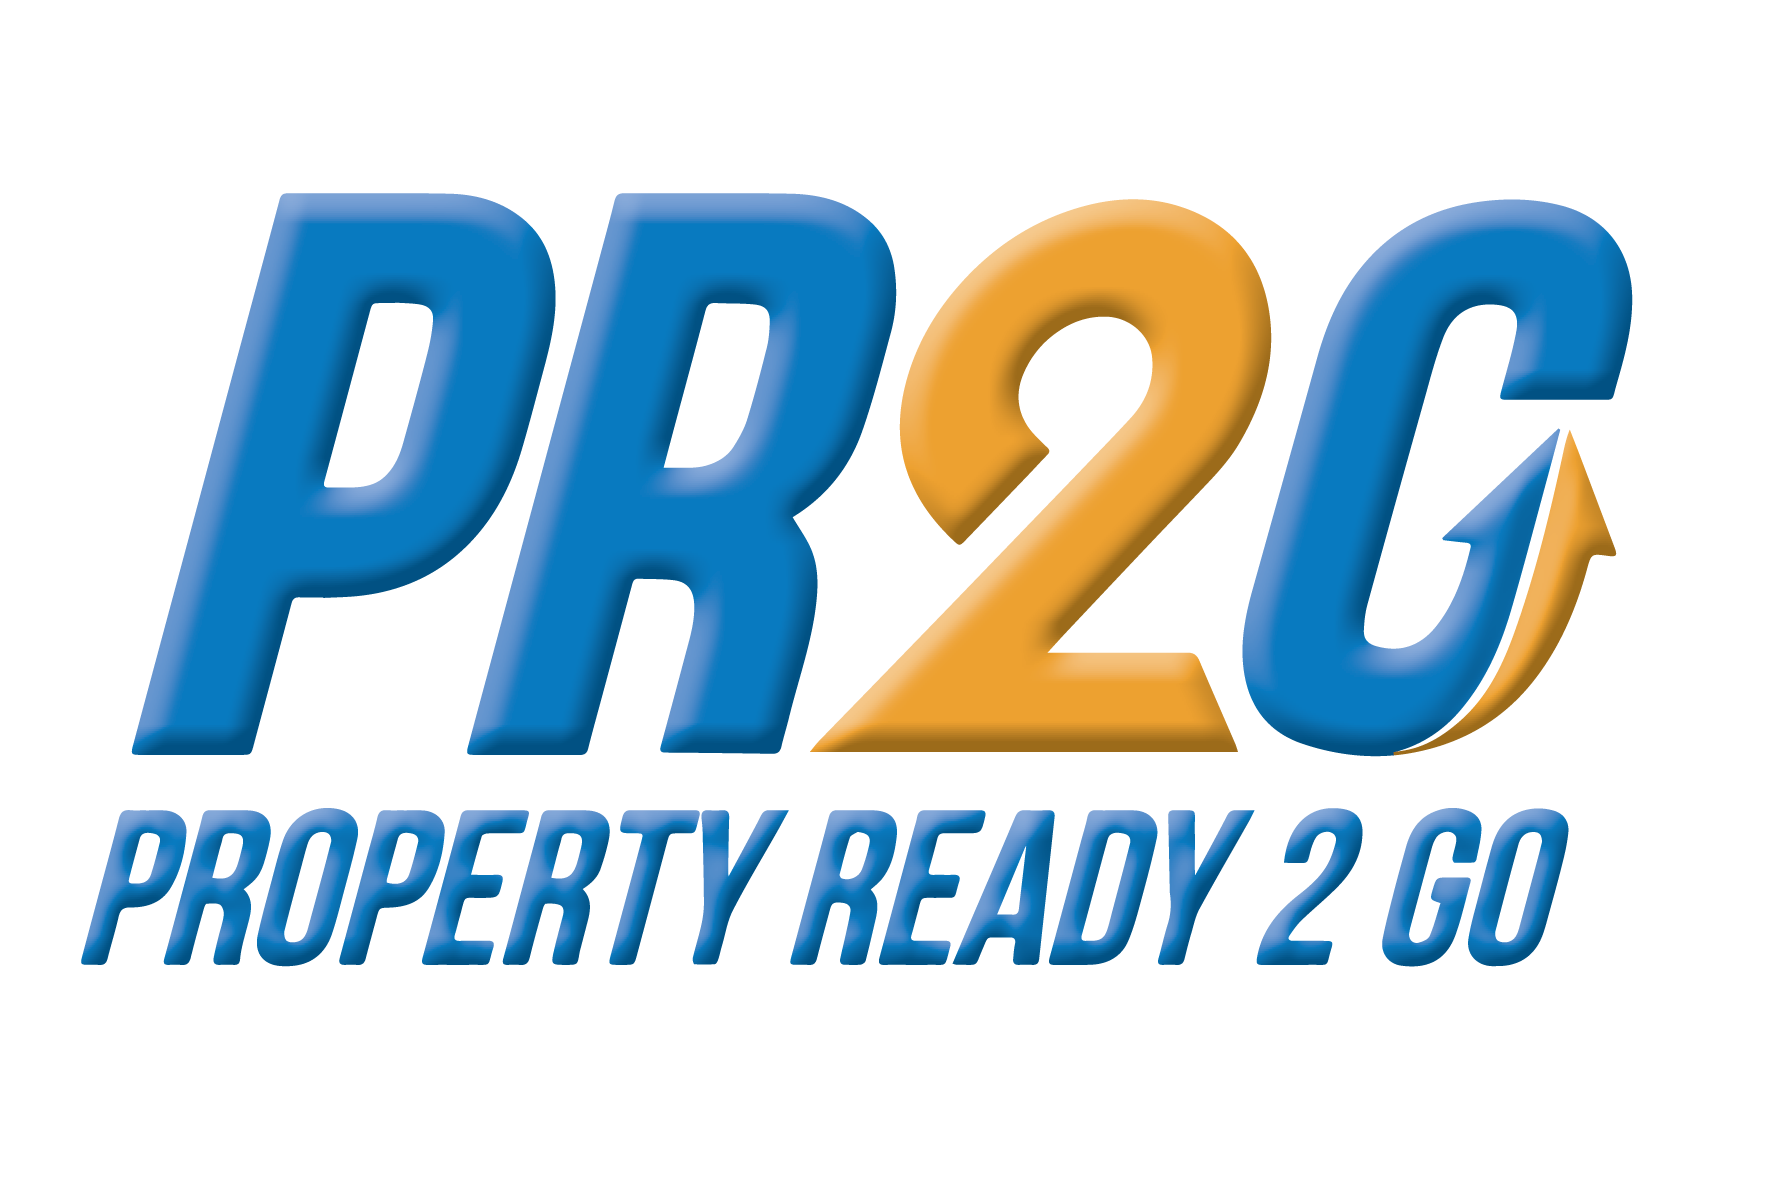 Property Ready 2 Go  logo